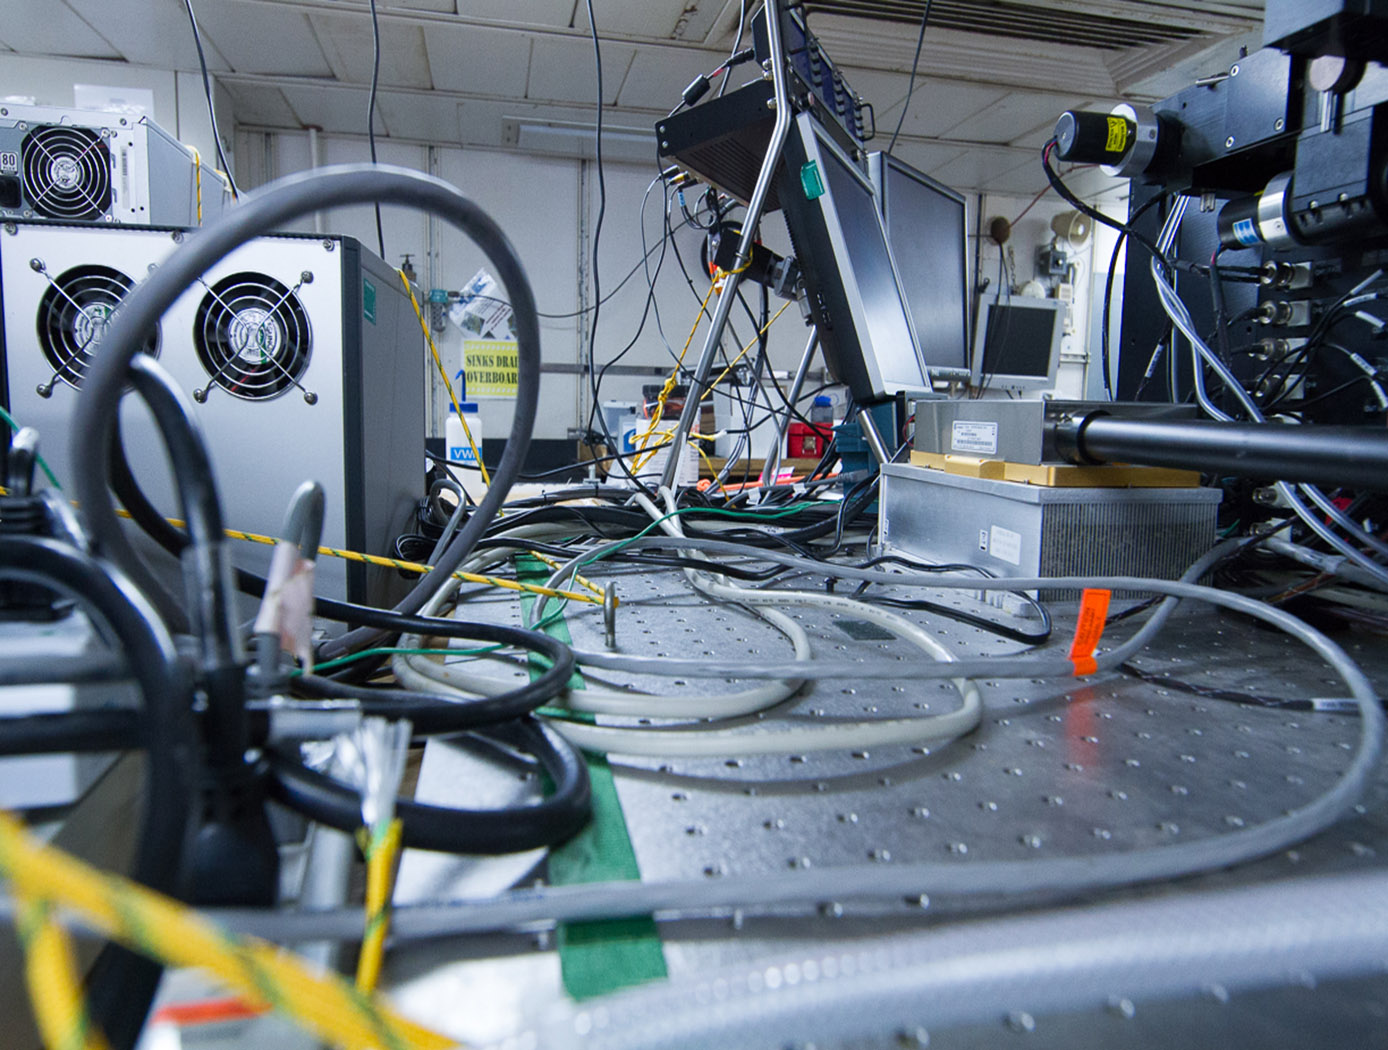 Onboard the R/V Atlantis a tangle of power and data cables awaits a busy team of scientists who will organize them